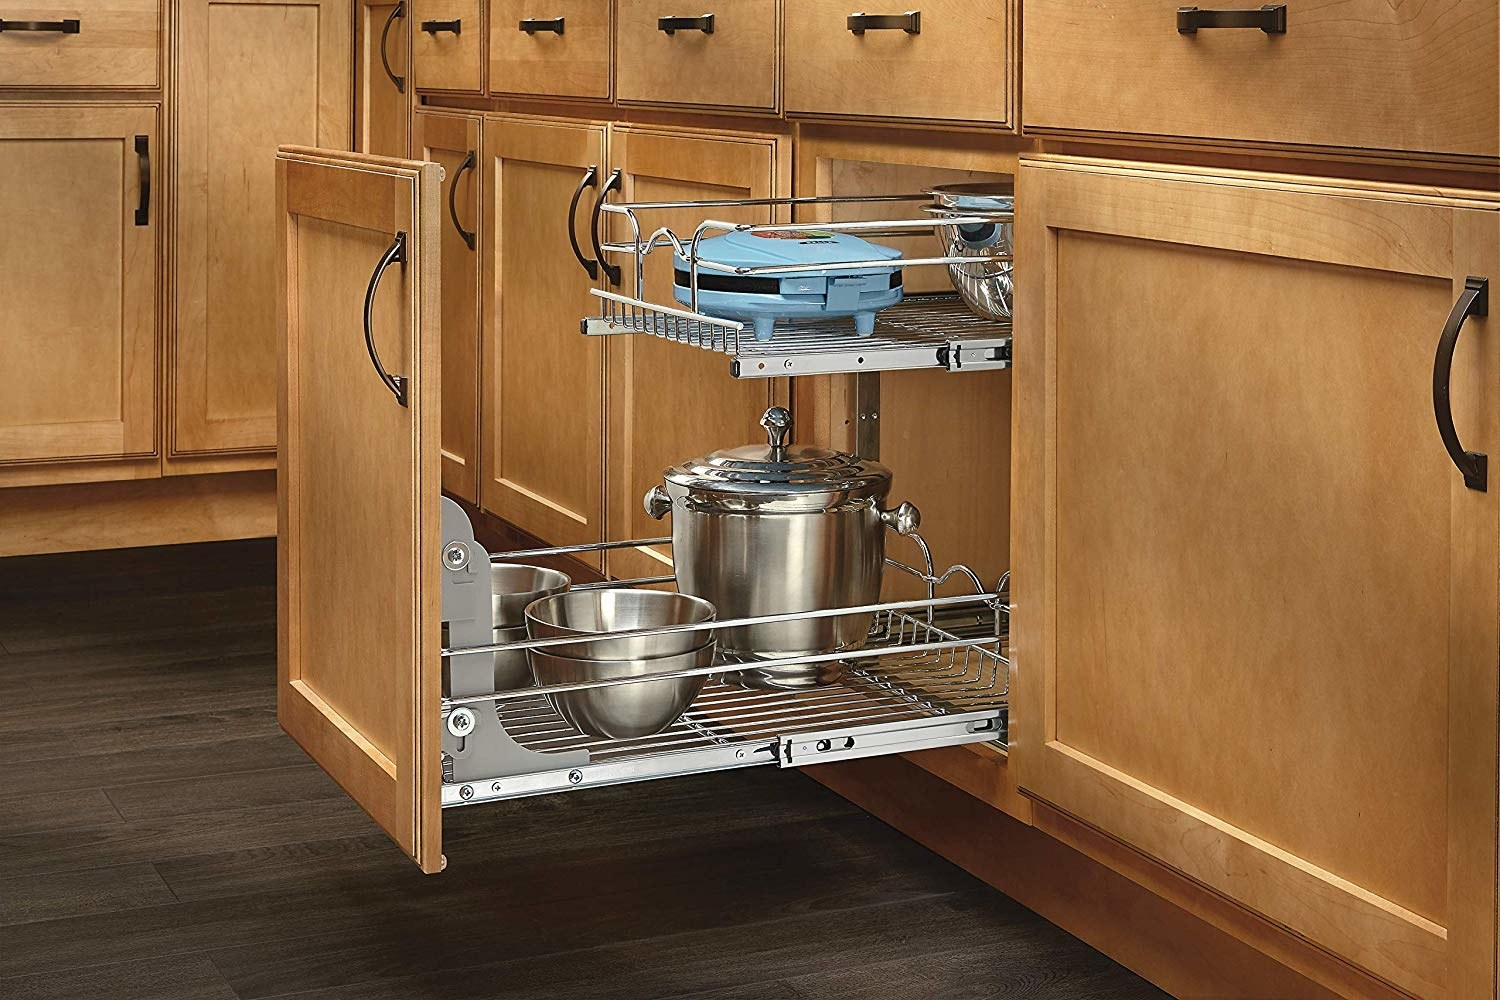 lower kitchen cabinet with front of cabinet door attached to a pullout rack for small appliances